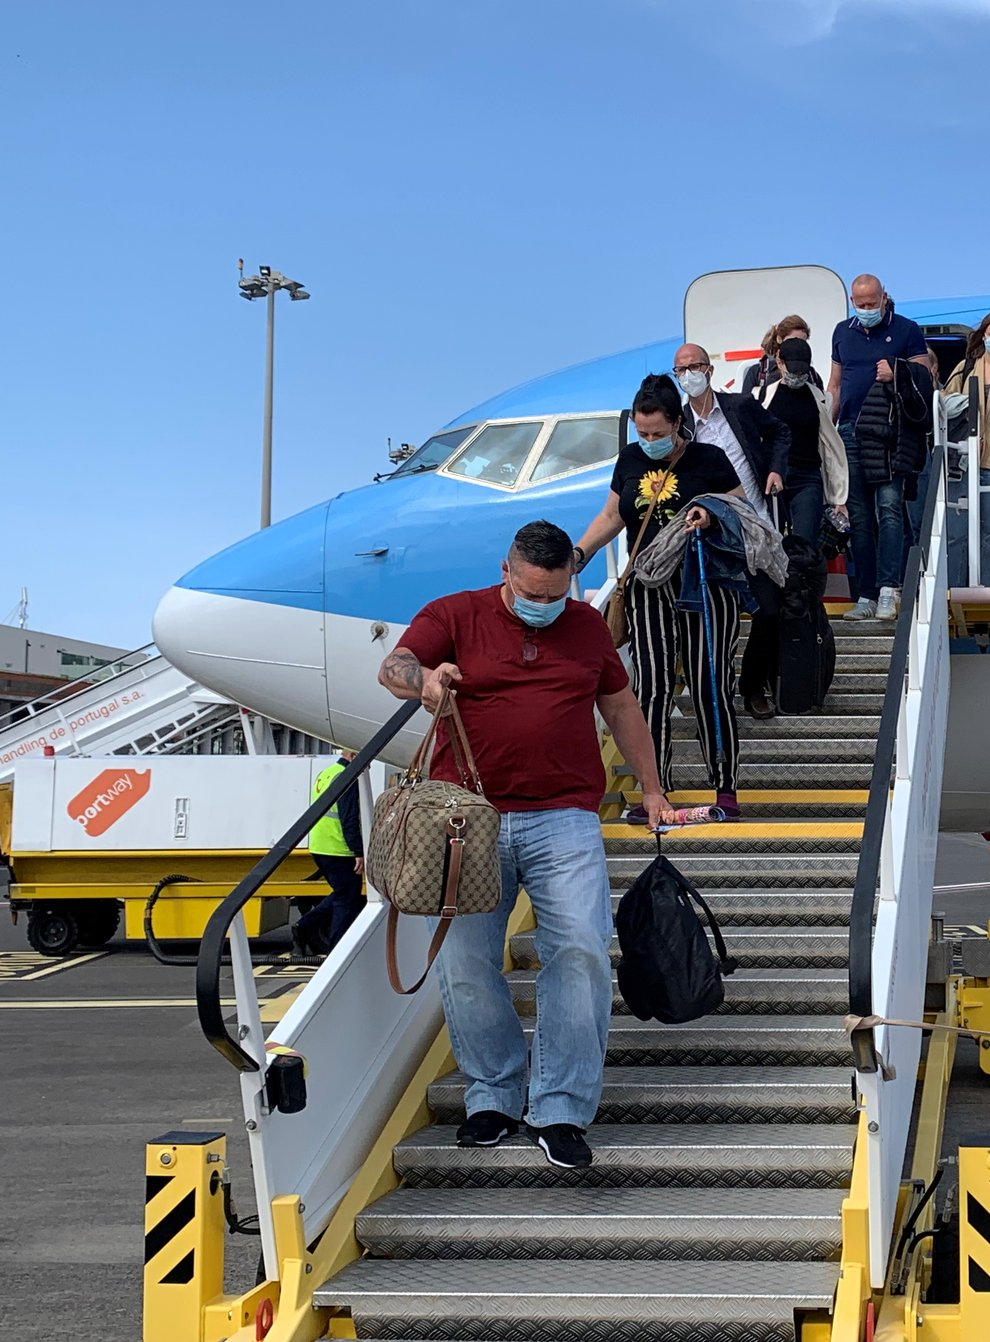 Holidaymakers disembarking from their Gatwick flight in Madeira